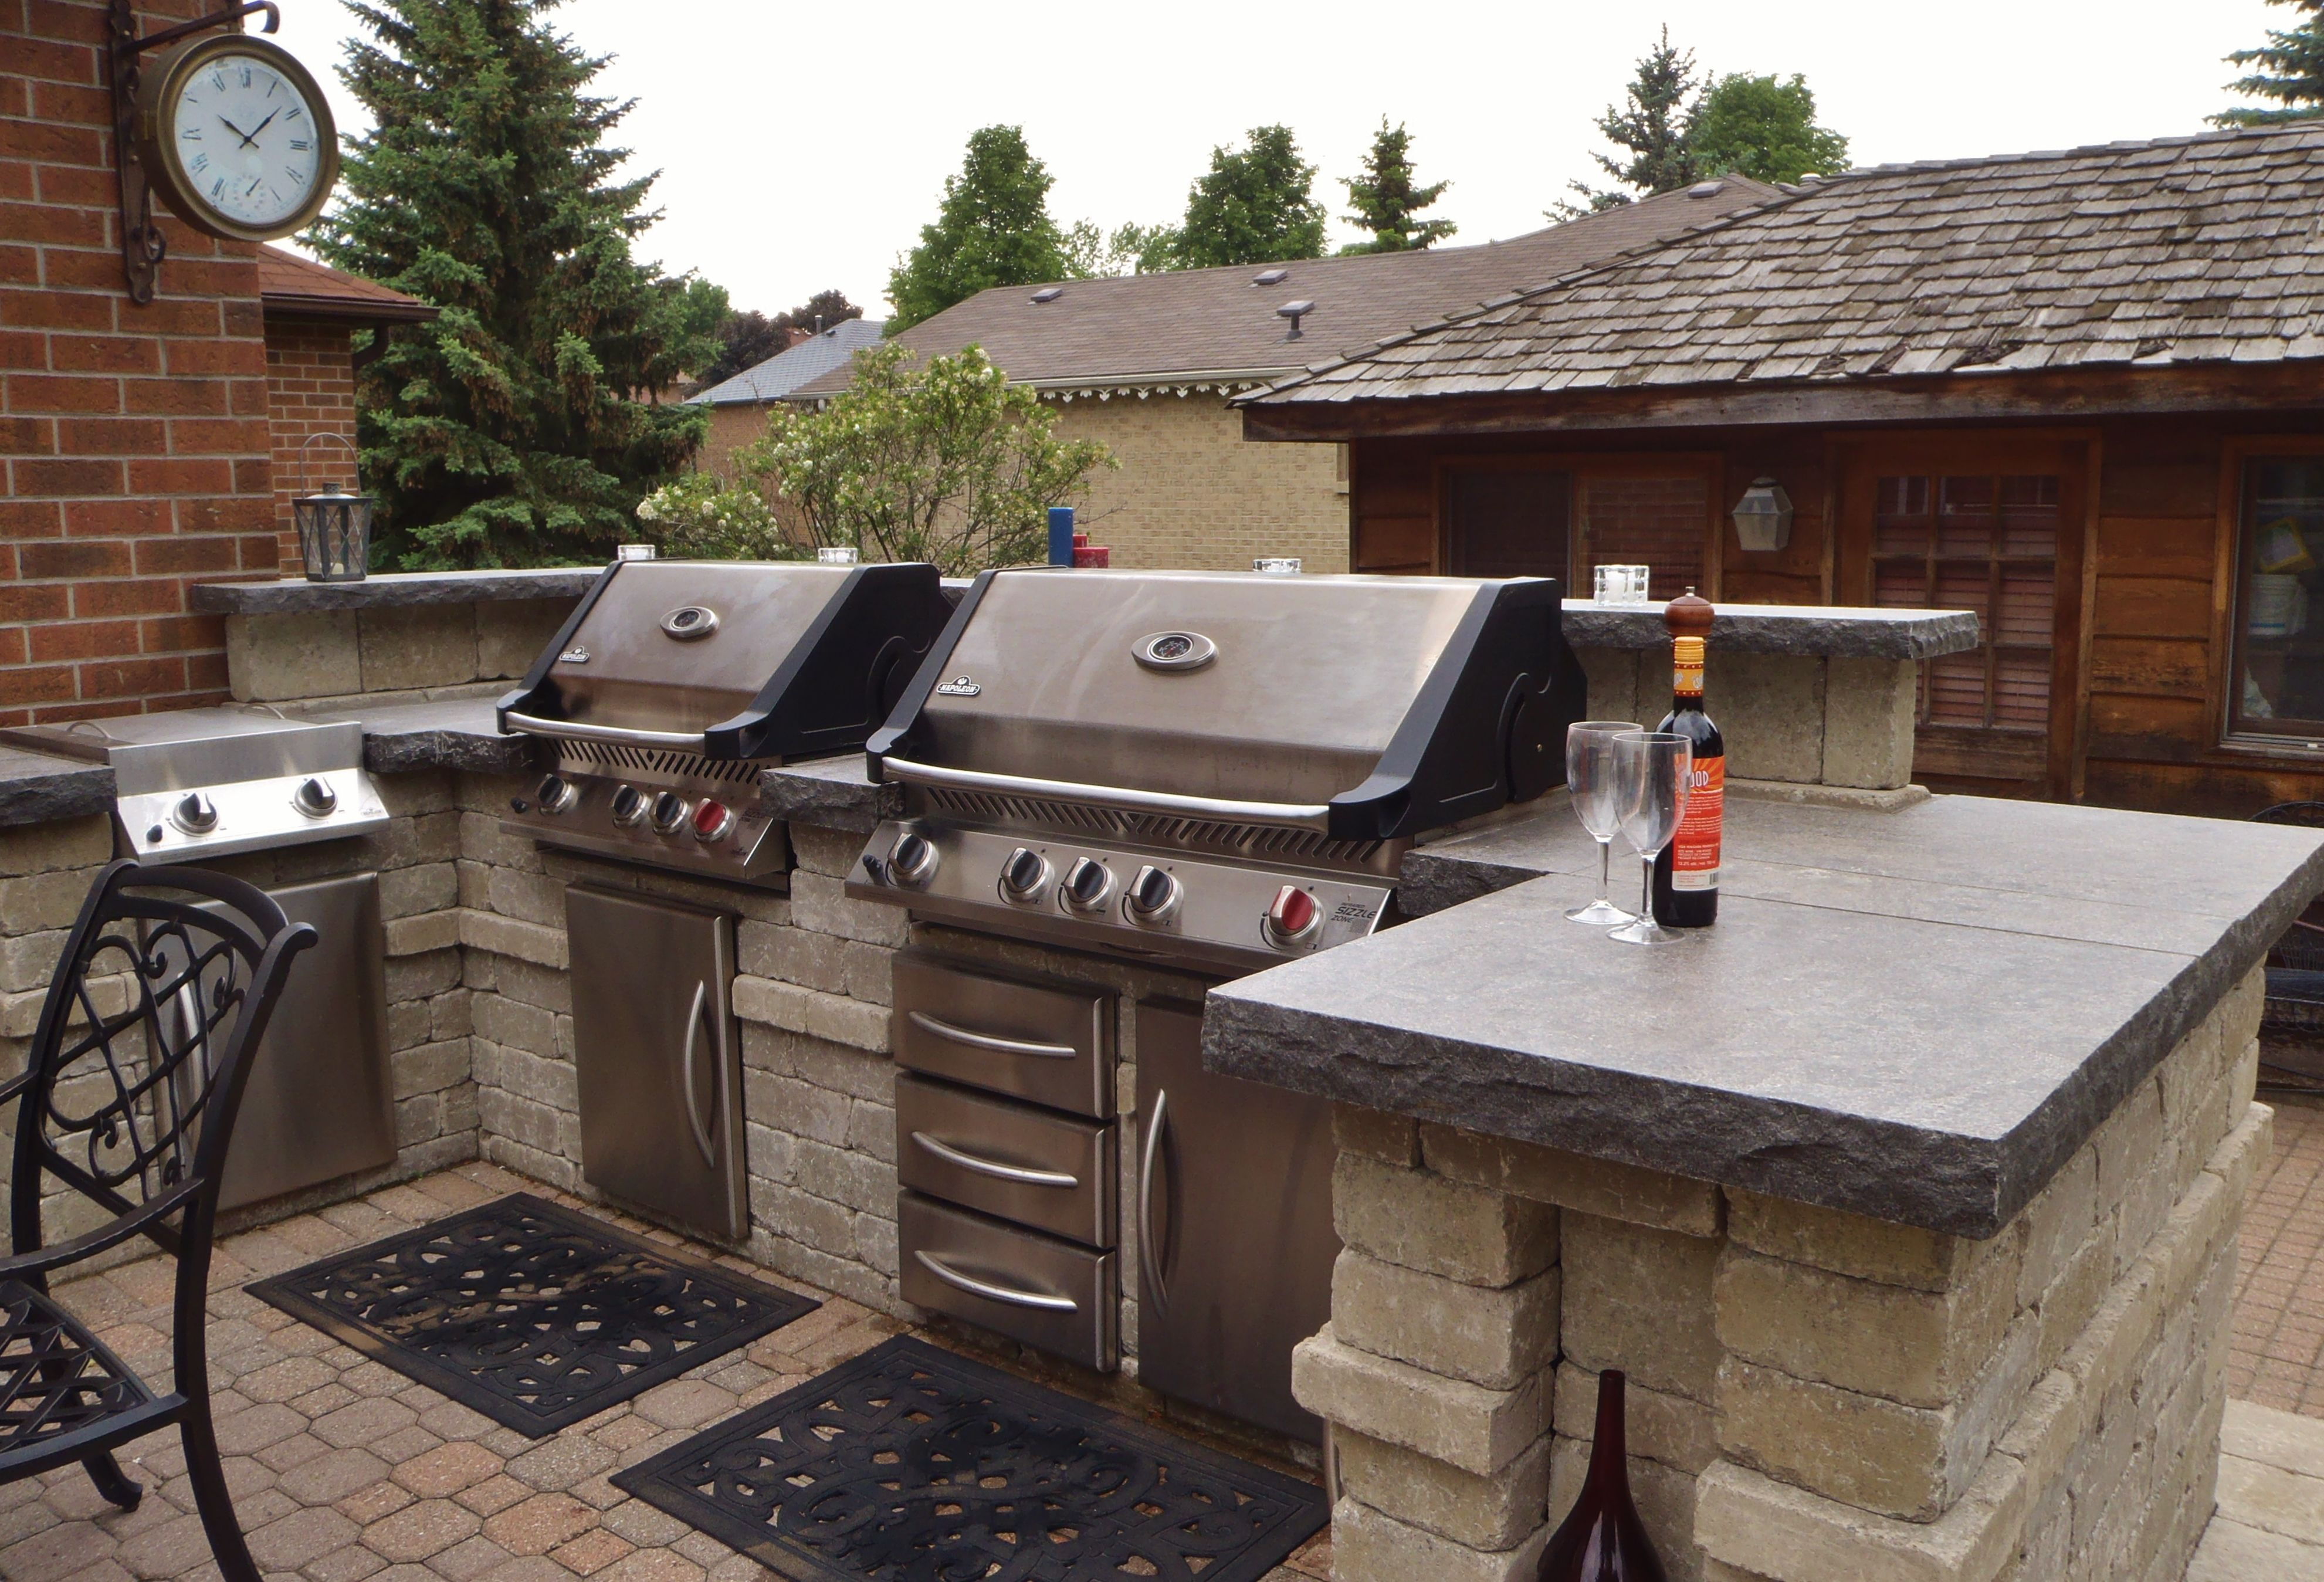 grilling station and outdoor kitchen area with backsplash and natural stone countertops on outdoor kitchen natural id=31047